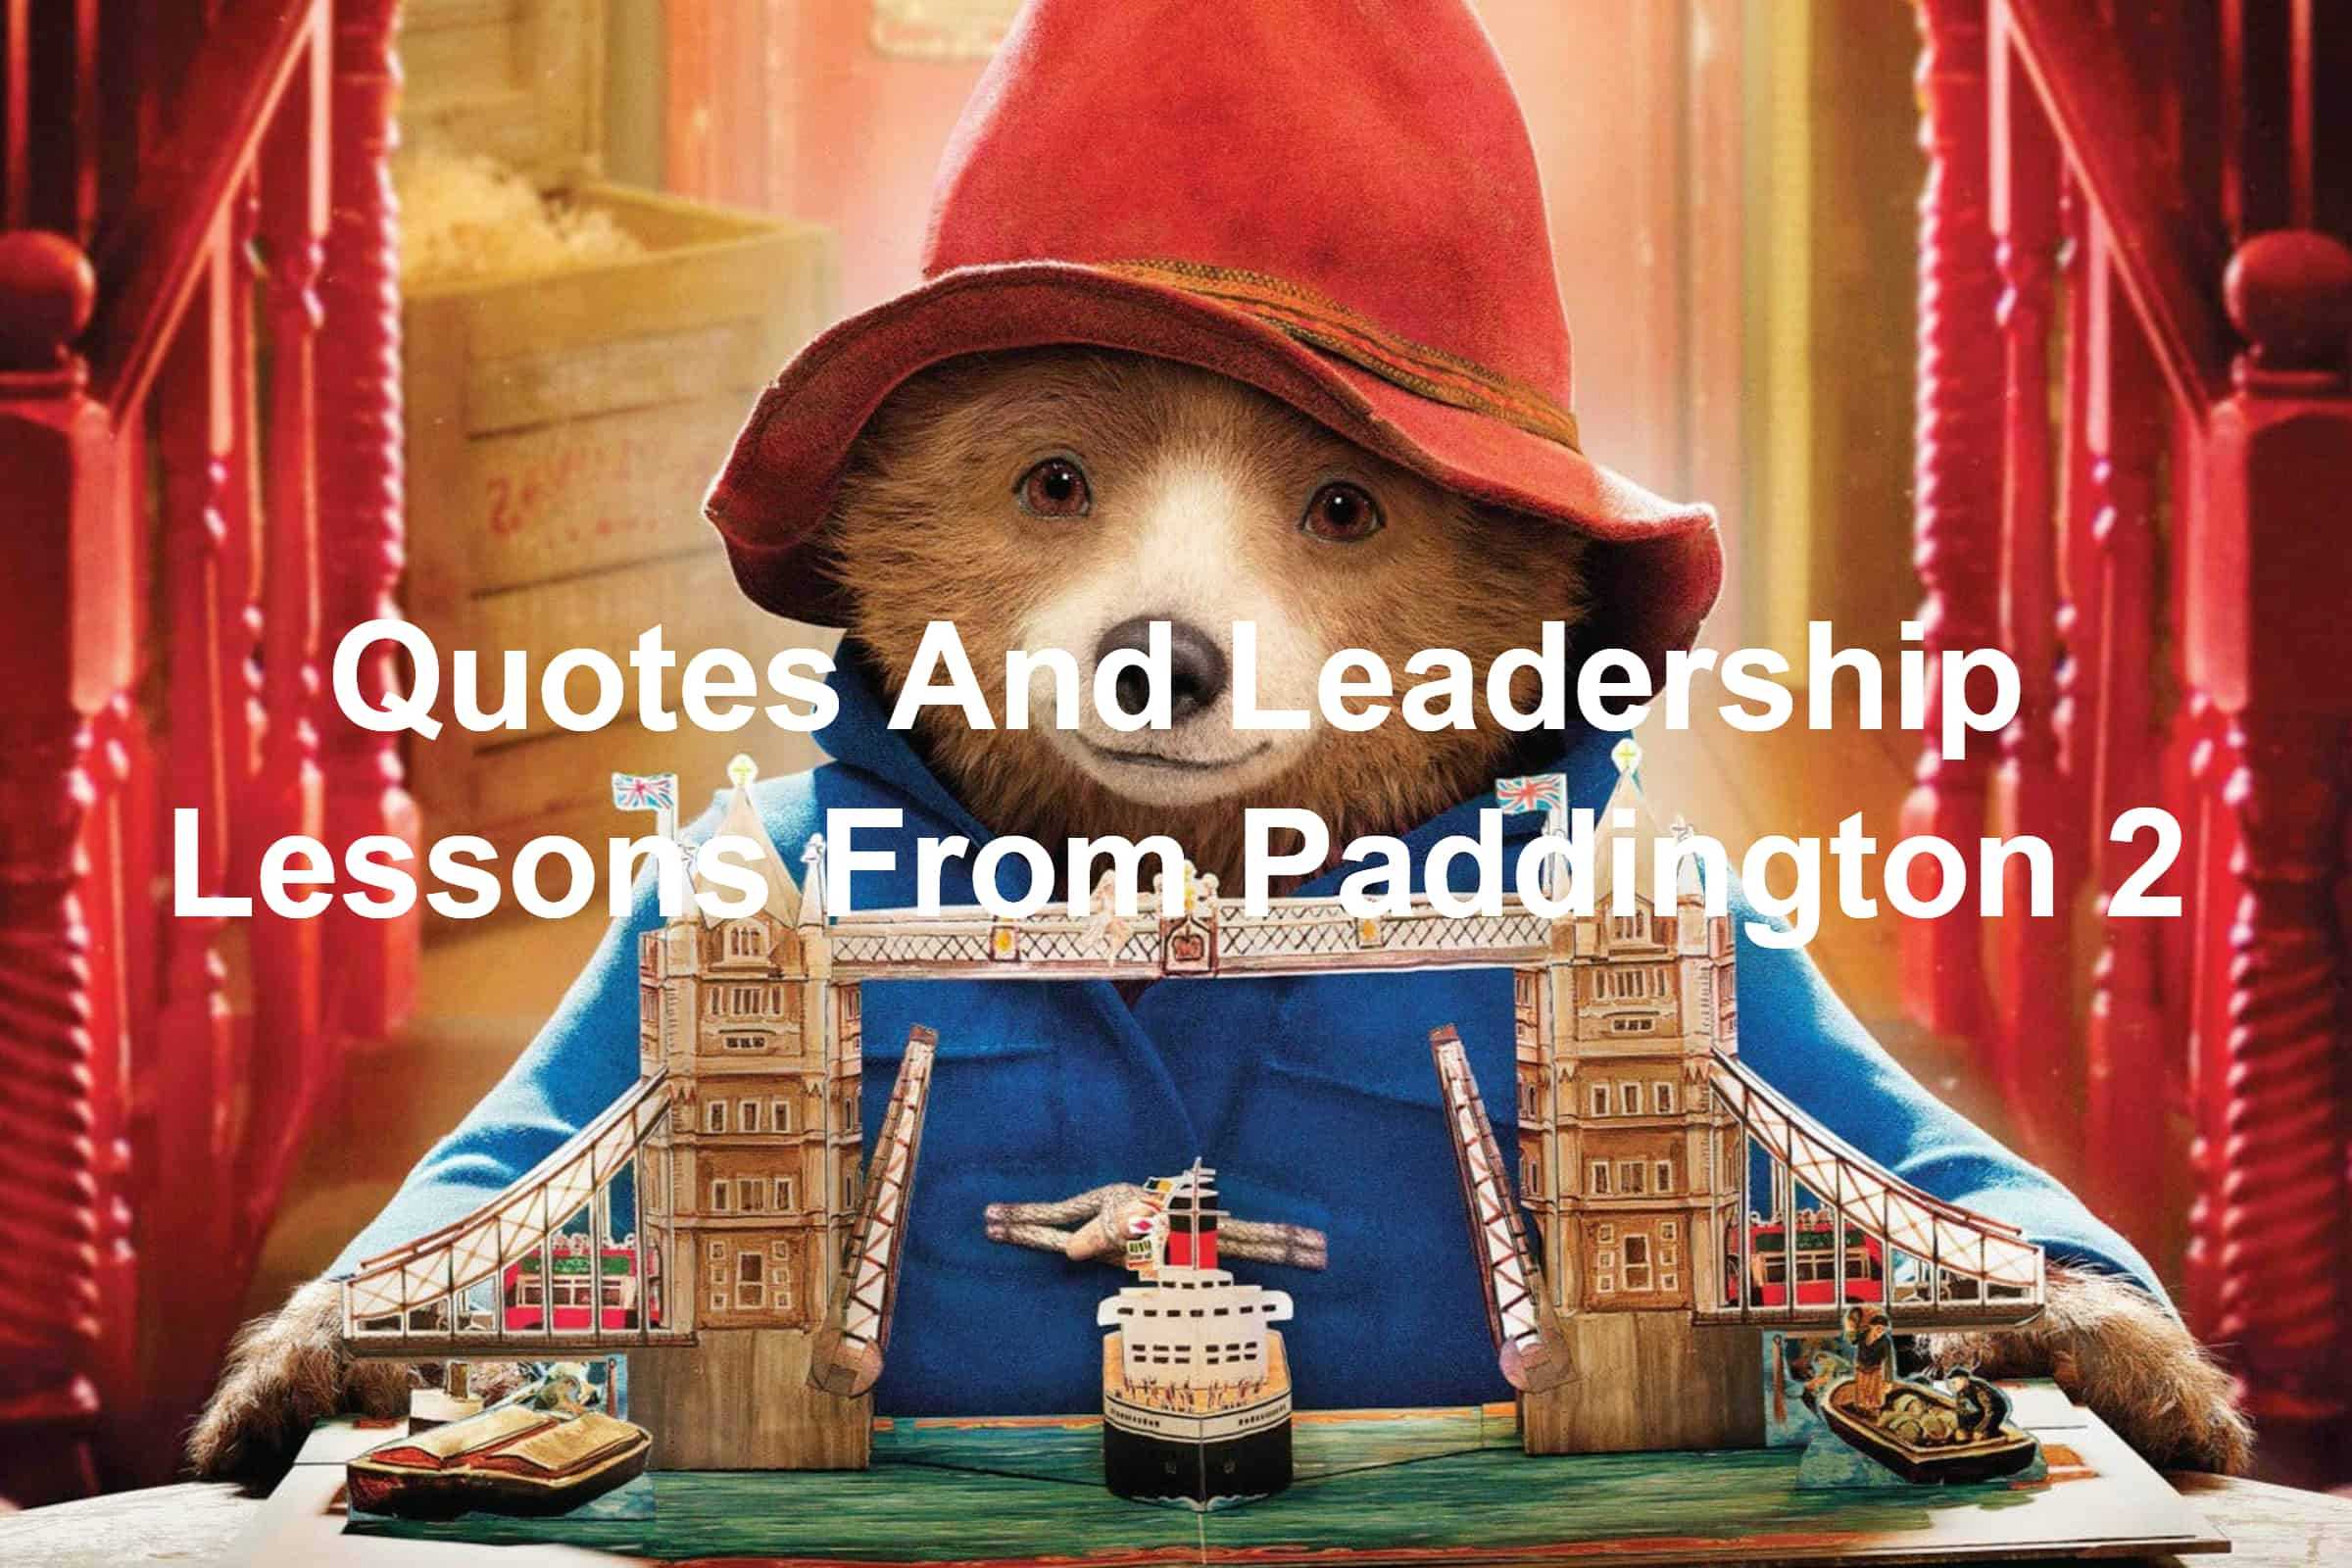 Learn leadership lessons from Paddington 2